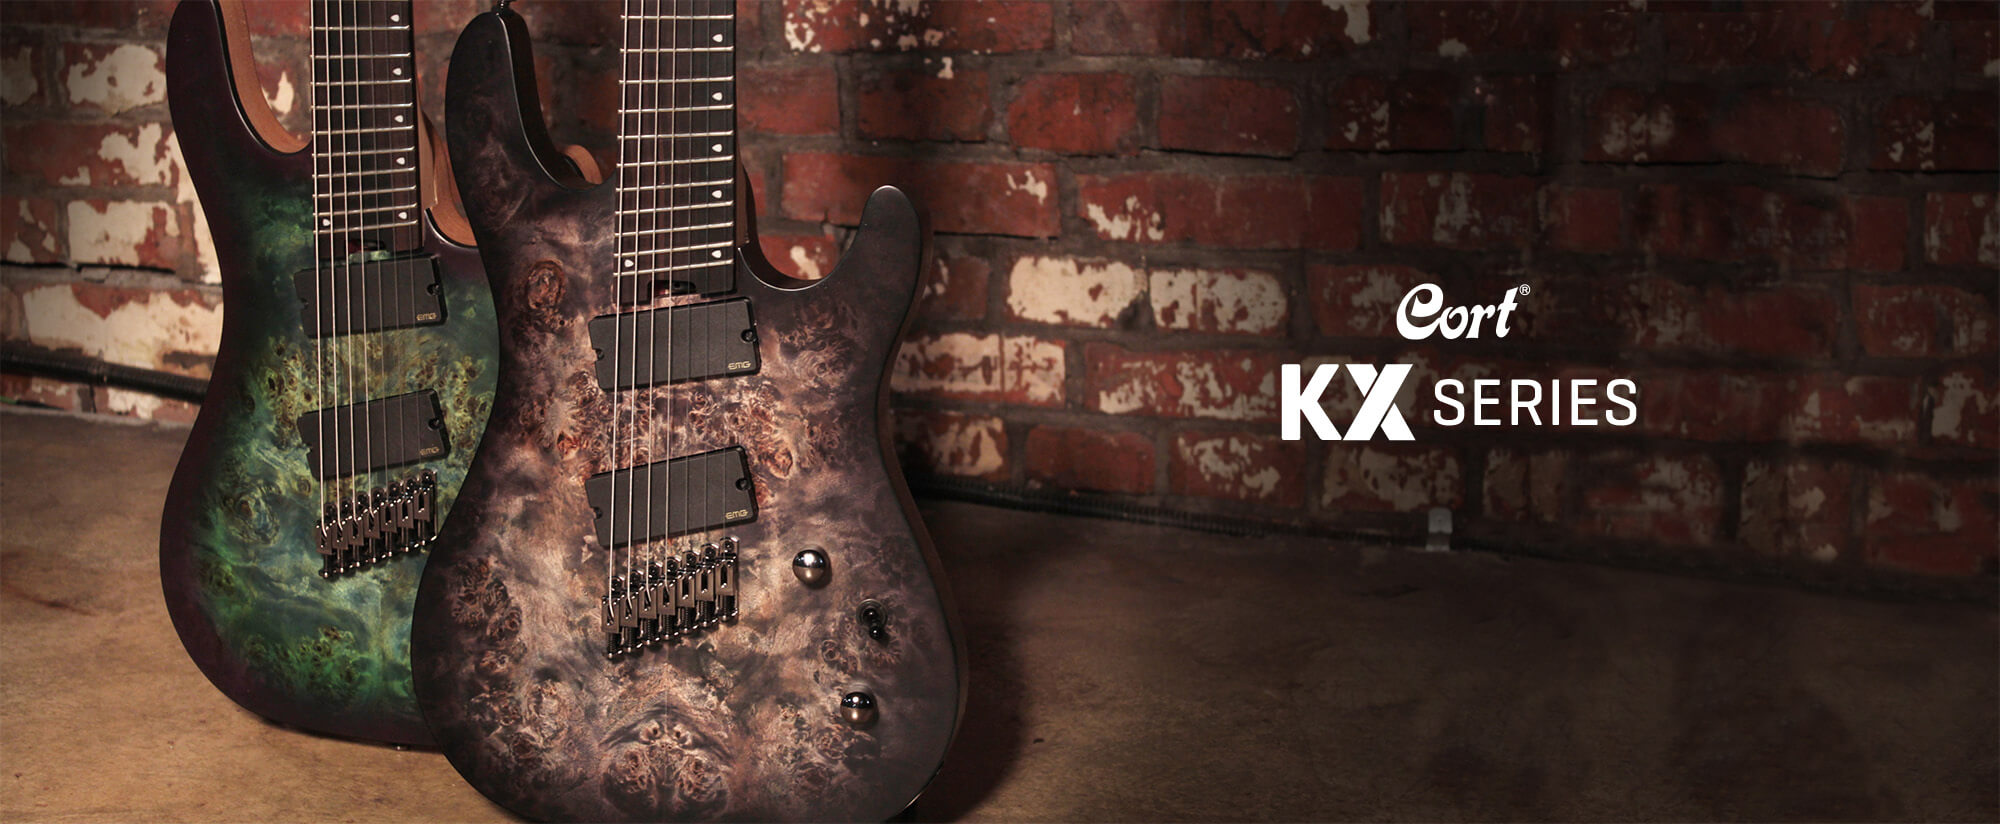 Cort KX Series product